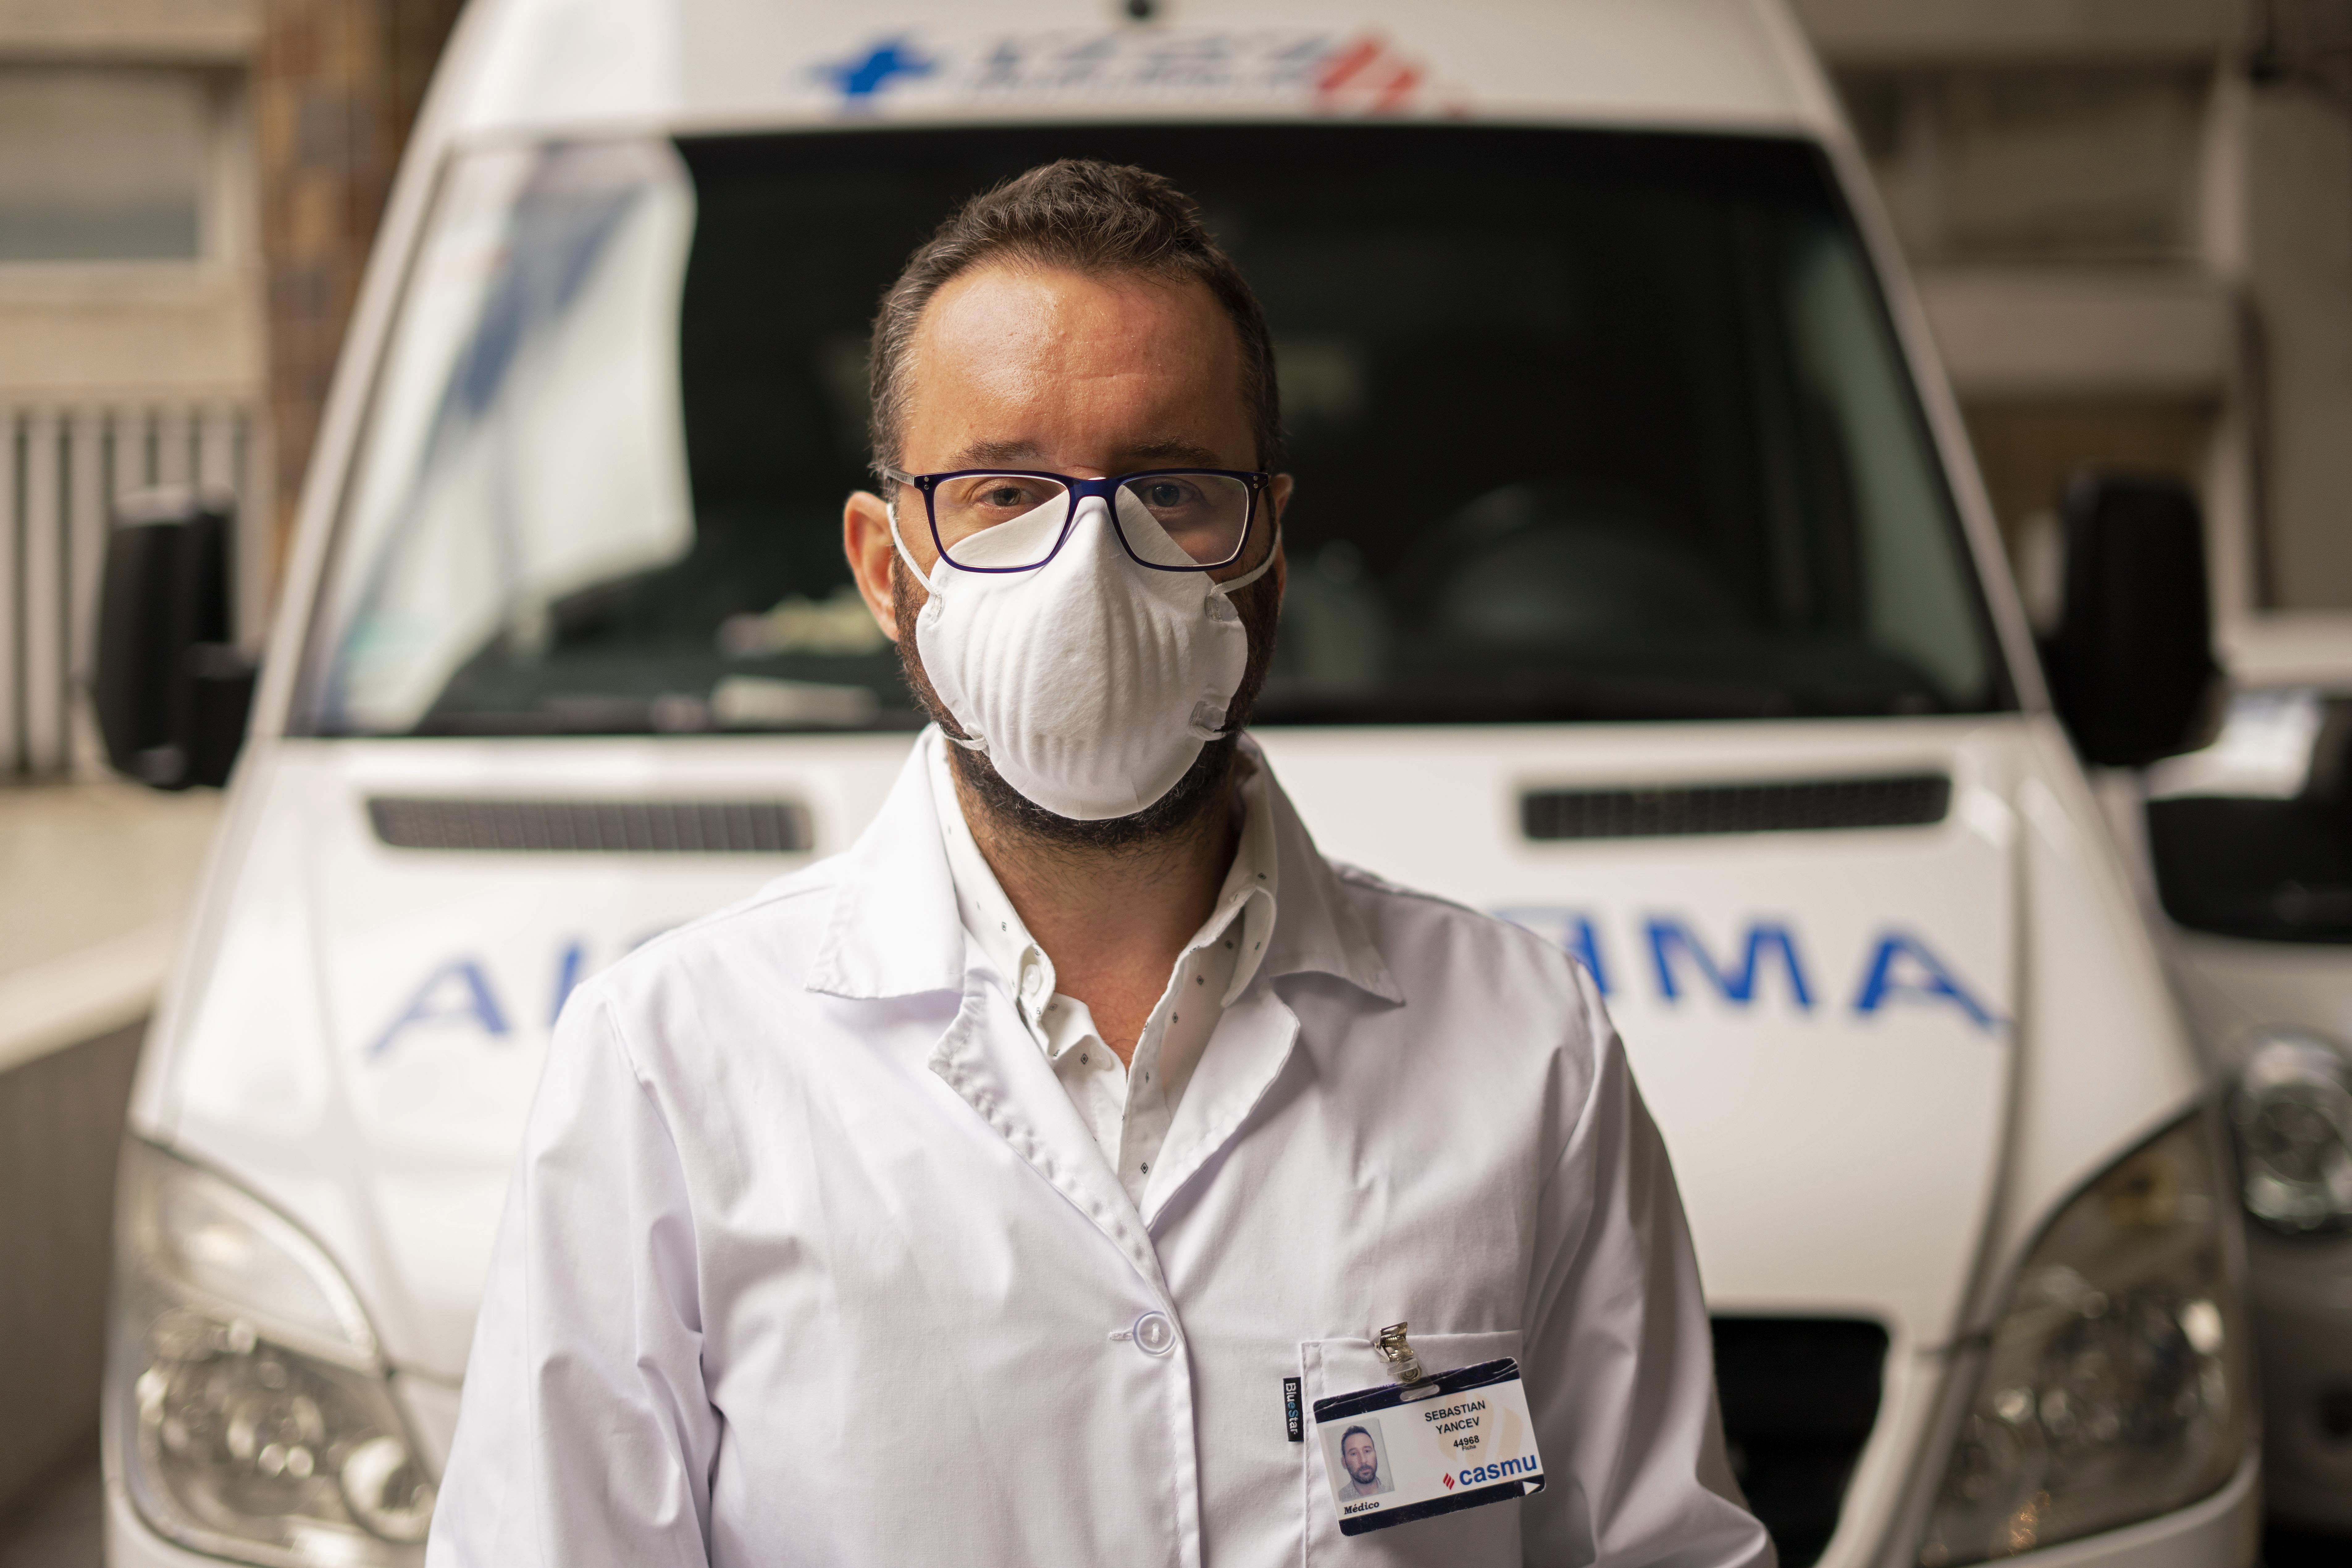 Doctor Sebastian Yancev, who helped diagnose the new coronavirus onboard the Australian Greg Mortimer cruise, stands in front of the ambulance that was used to move patients to local hospitals in Montevideo, Uruguay, on April 7, 2020.